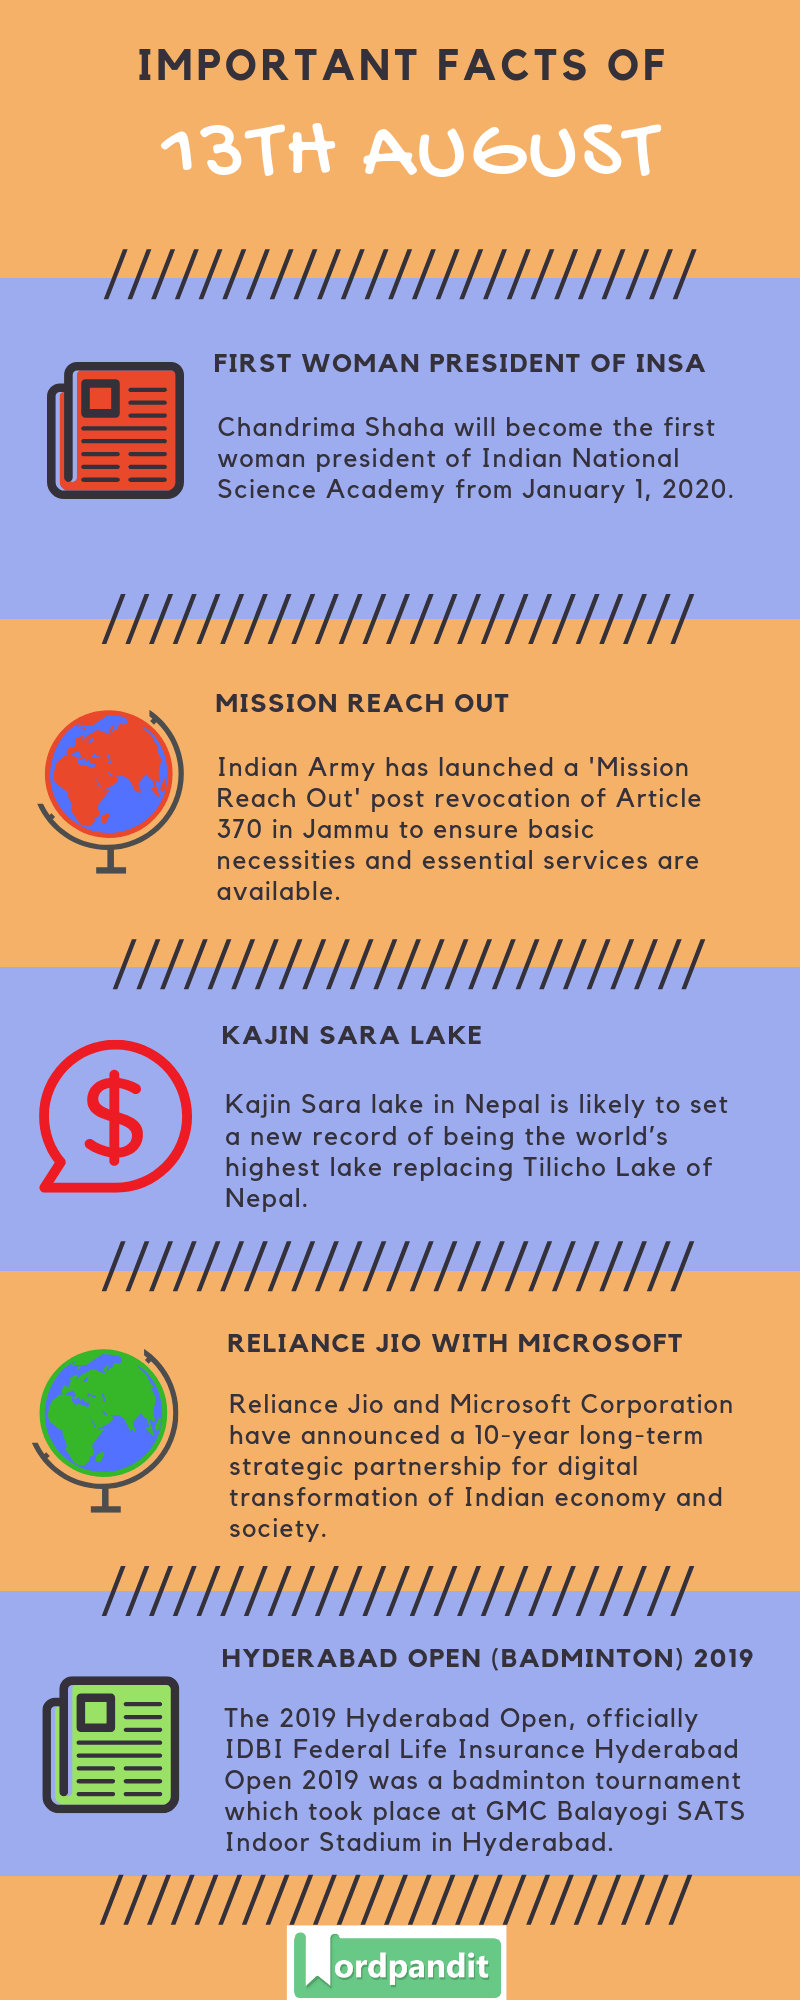 Daily Current Affairs 13 August 2019 Current Affairs Quiz 13 August 2019 Current Affairs Infographic